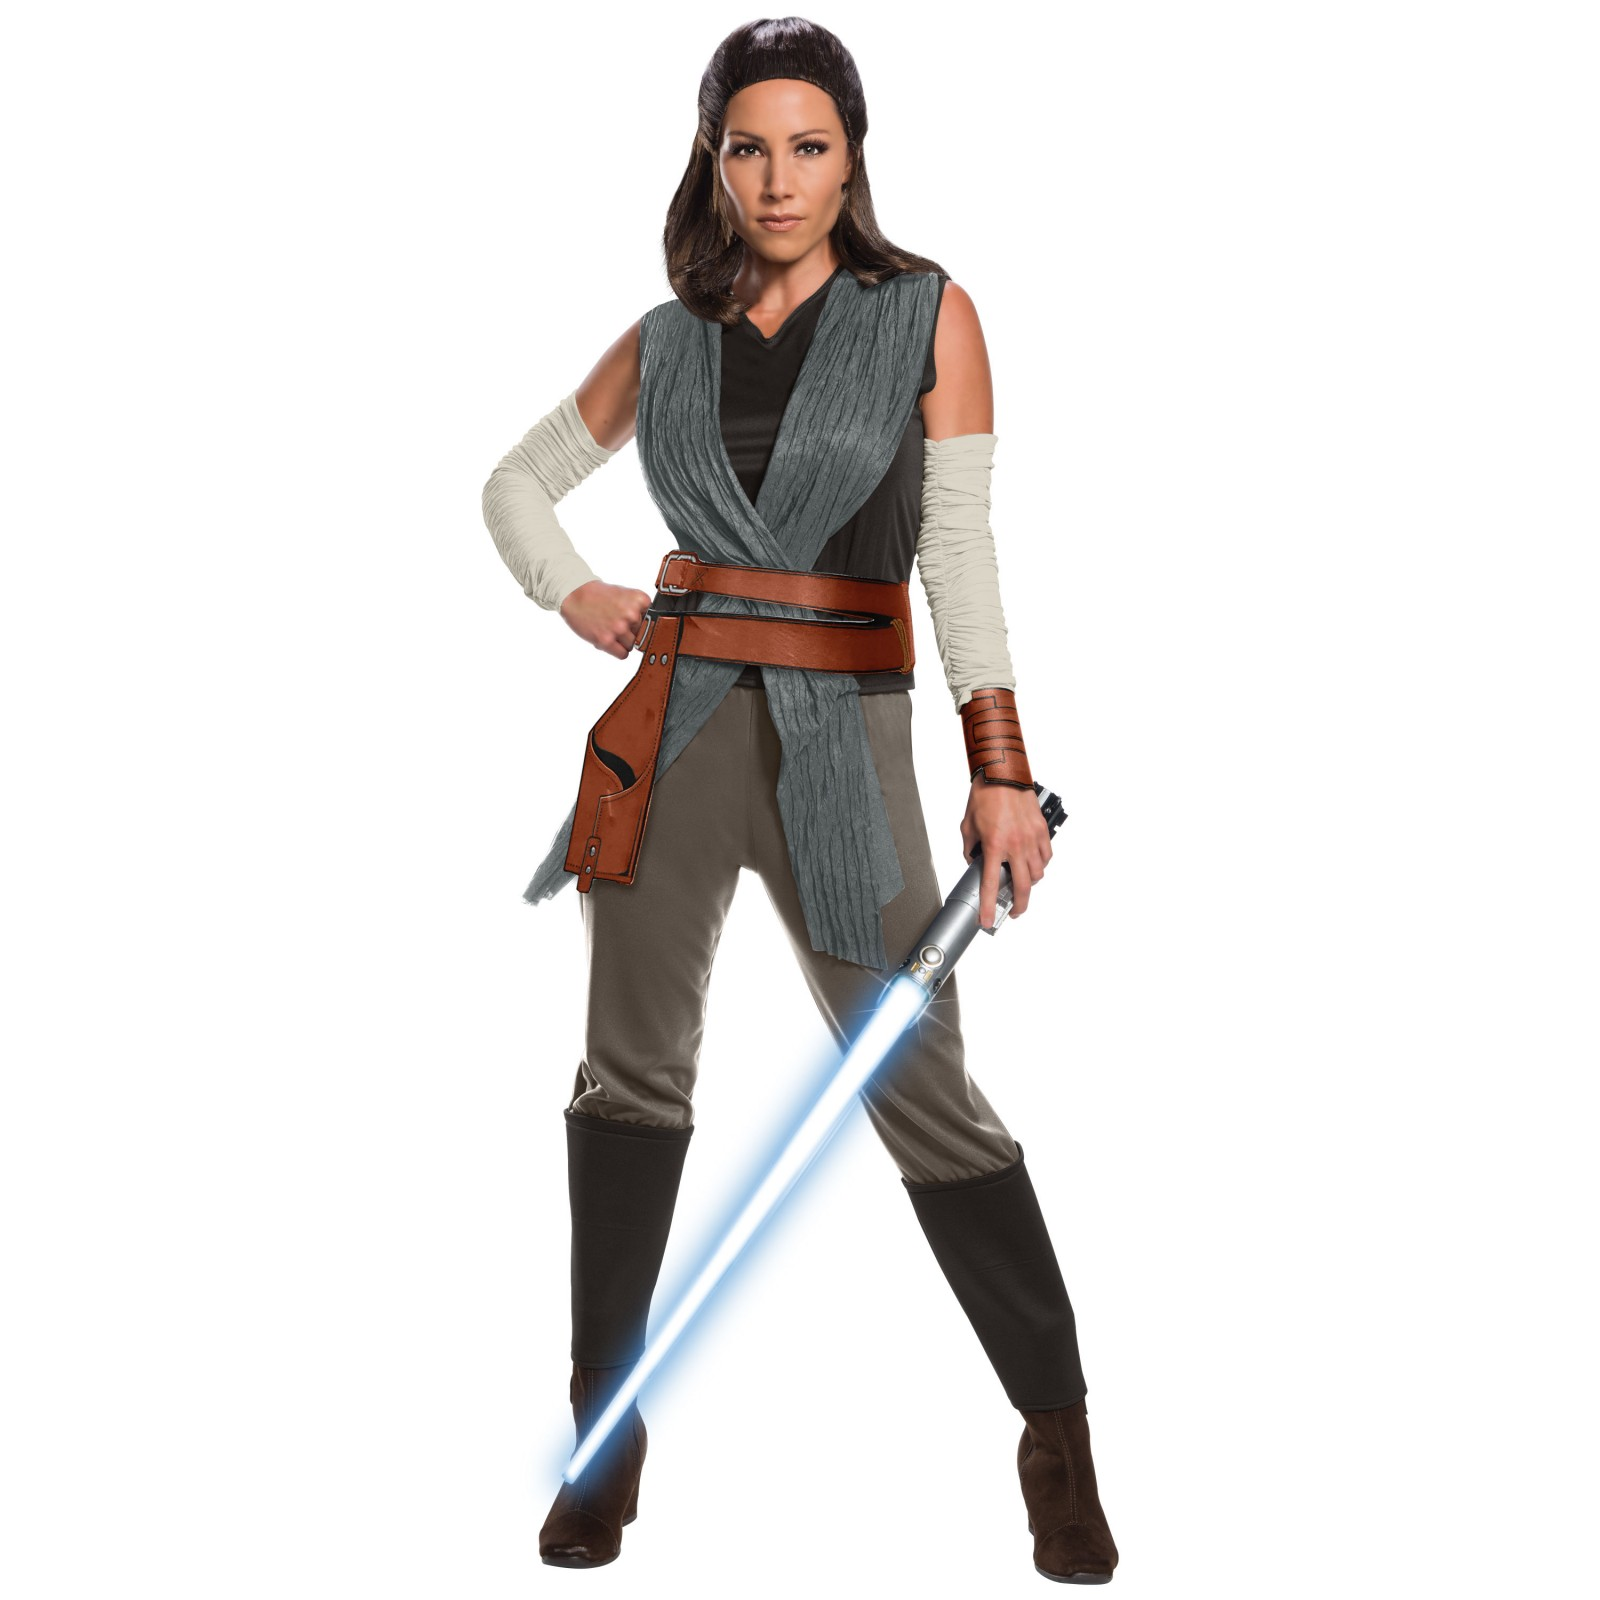 Star Wars Episode VIII - The Last Jedi Deluxe Women's Rey Costume